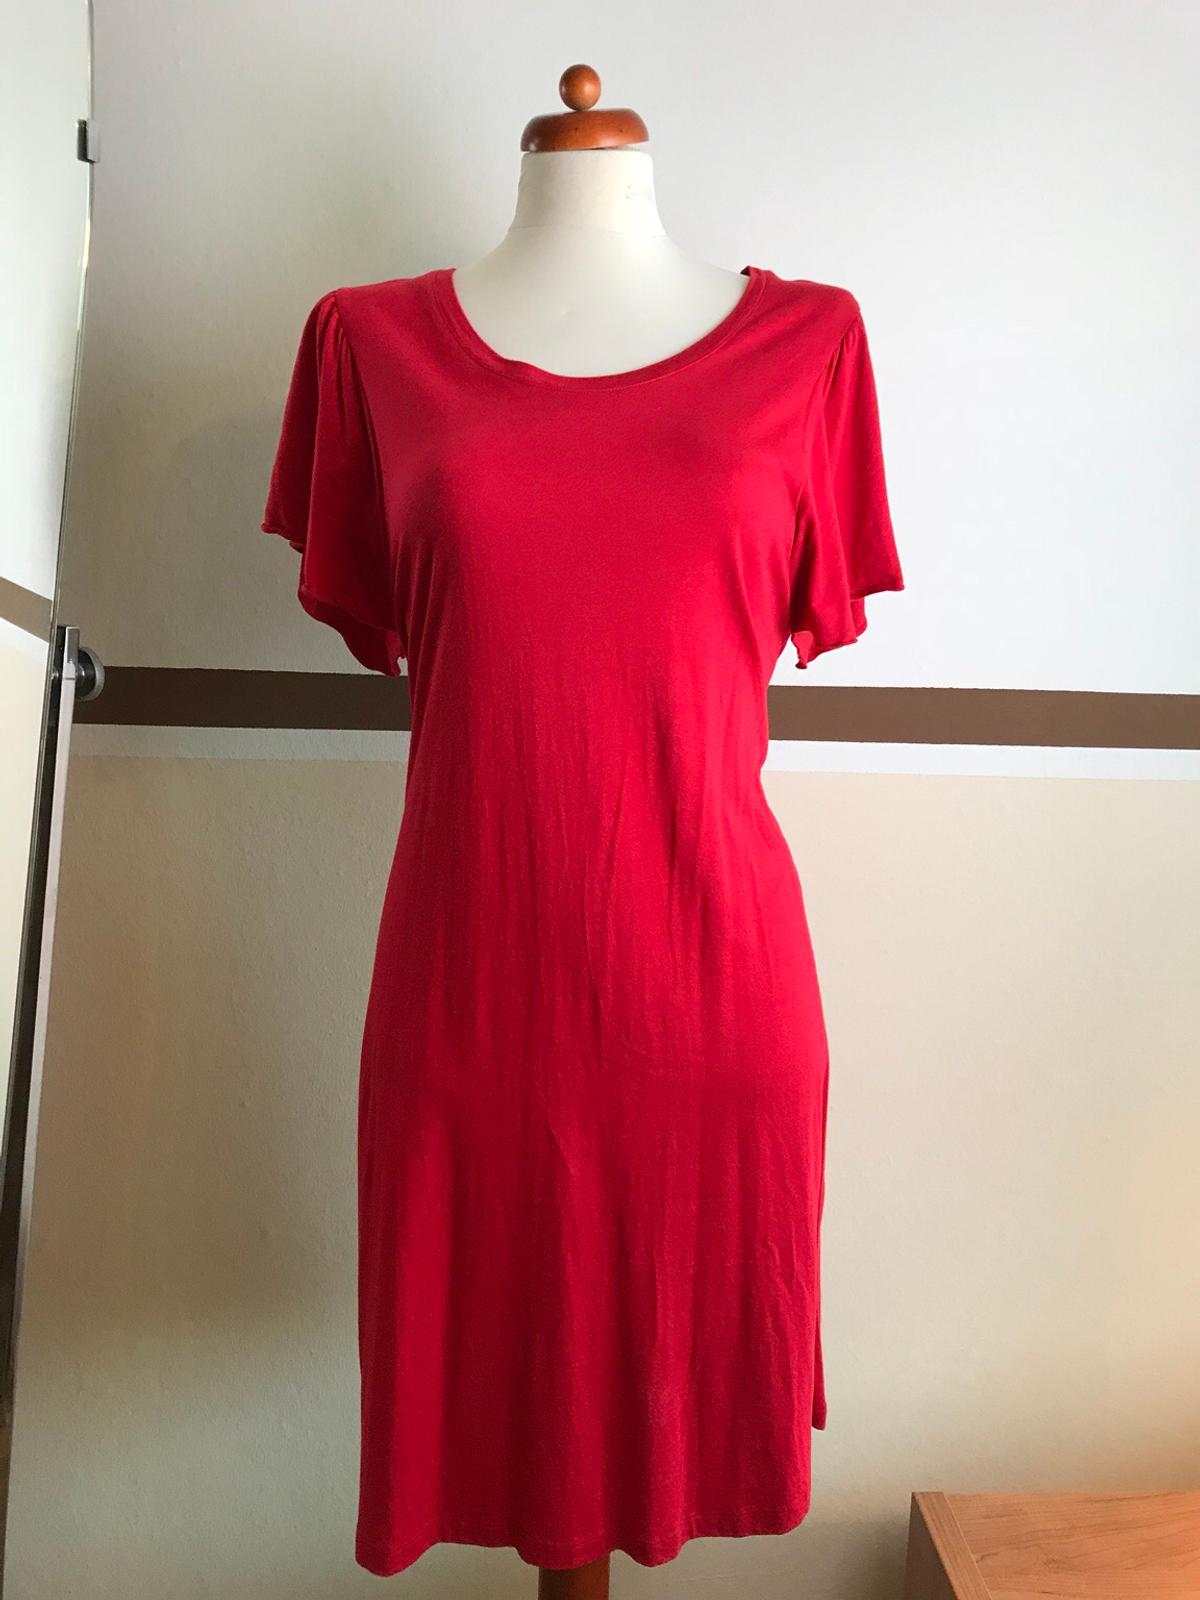 madeleine privacy rotes kleid gr. 42 wneu !!! in 13589